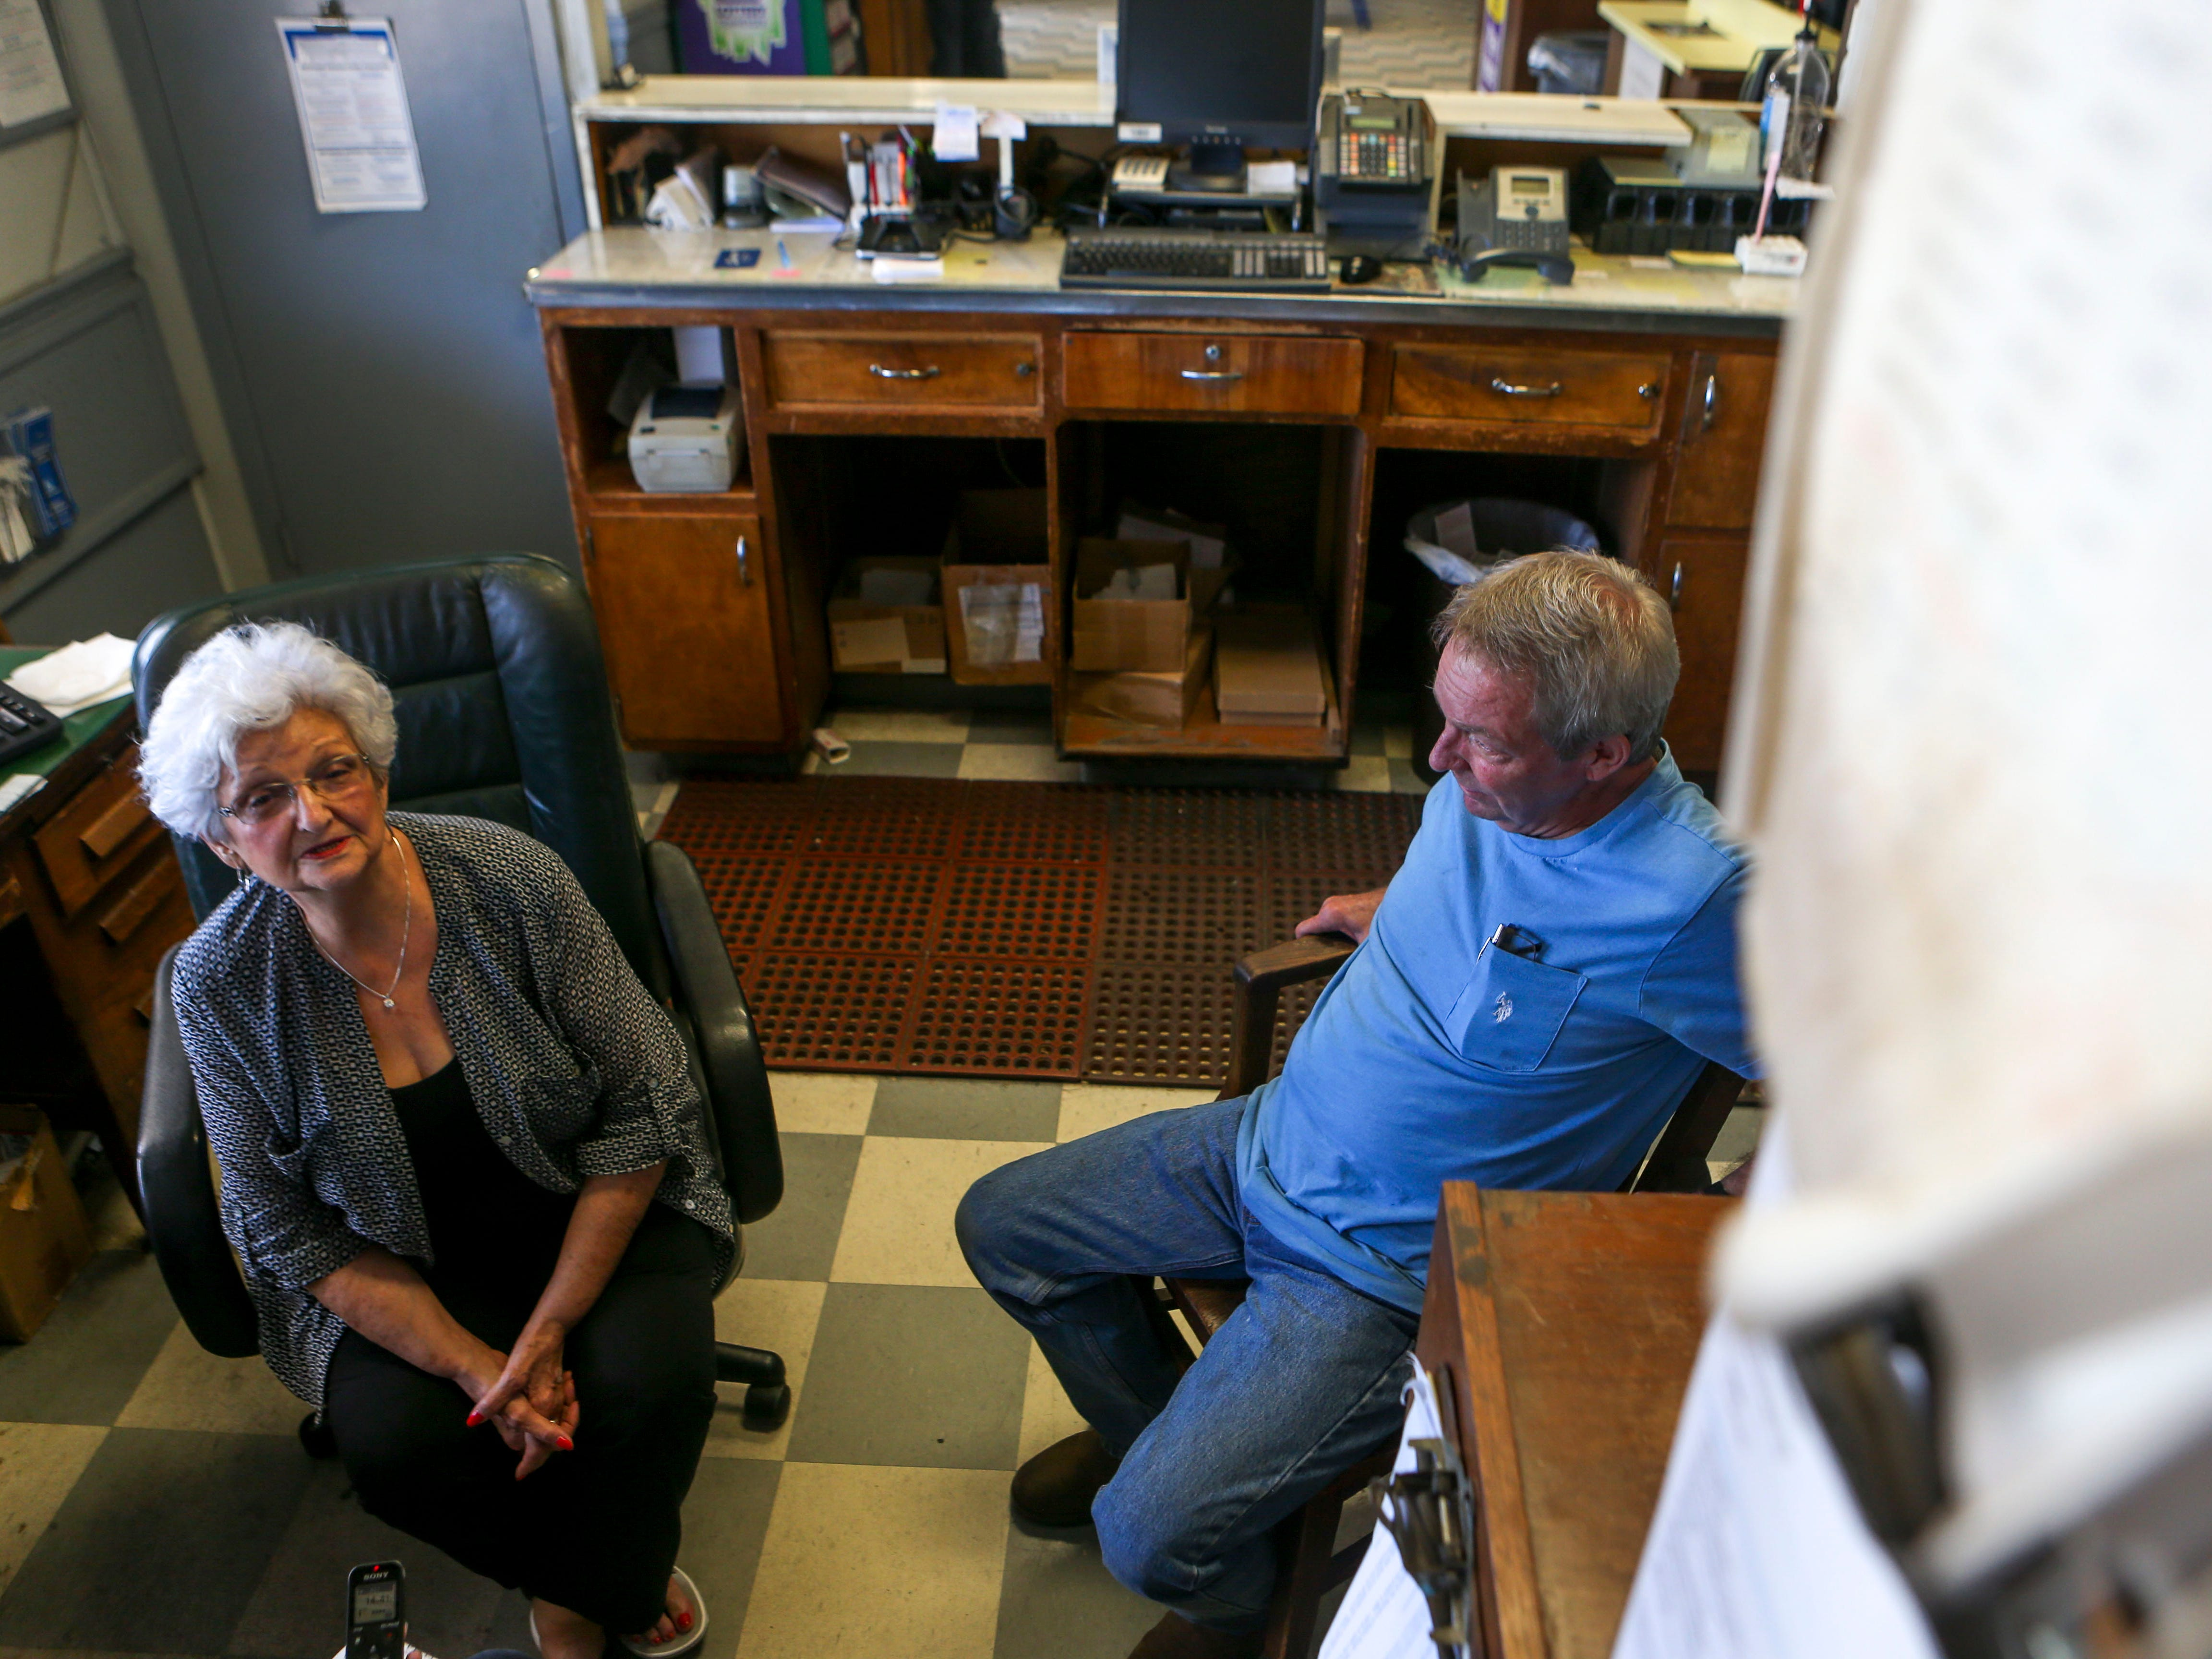 Doris Hollowell, left, and her son, Mark Hollowell, right, sit in the main office that Doris has operated since 1973 at the Greyhound Bus Station in Jackson, Tenn., on Wednesday, Sept. 12, 2018.